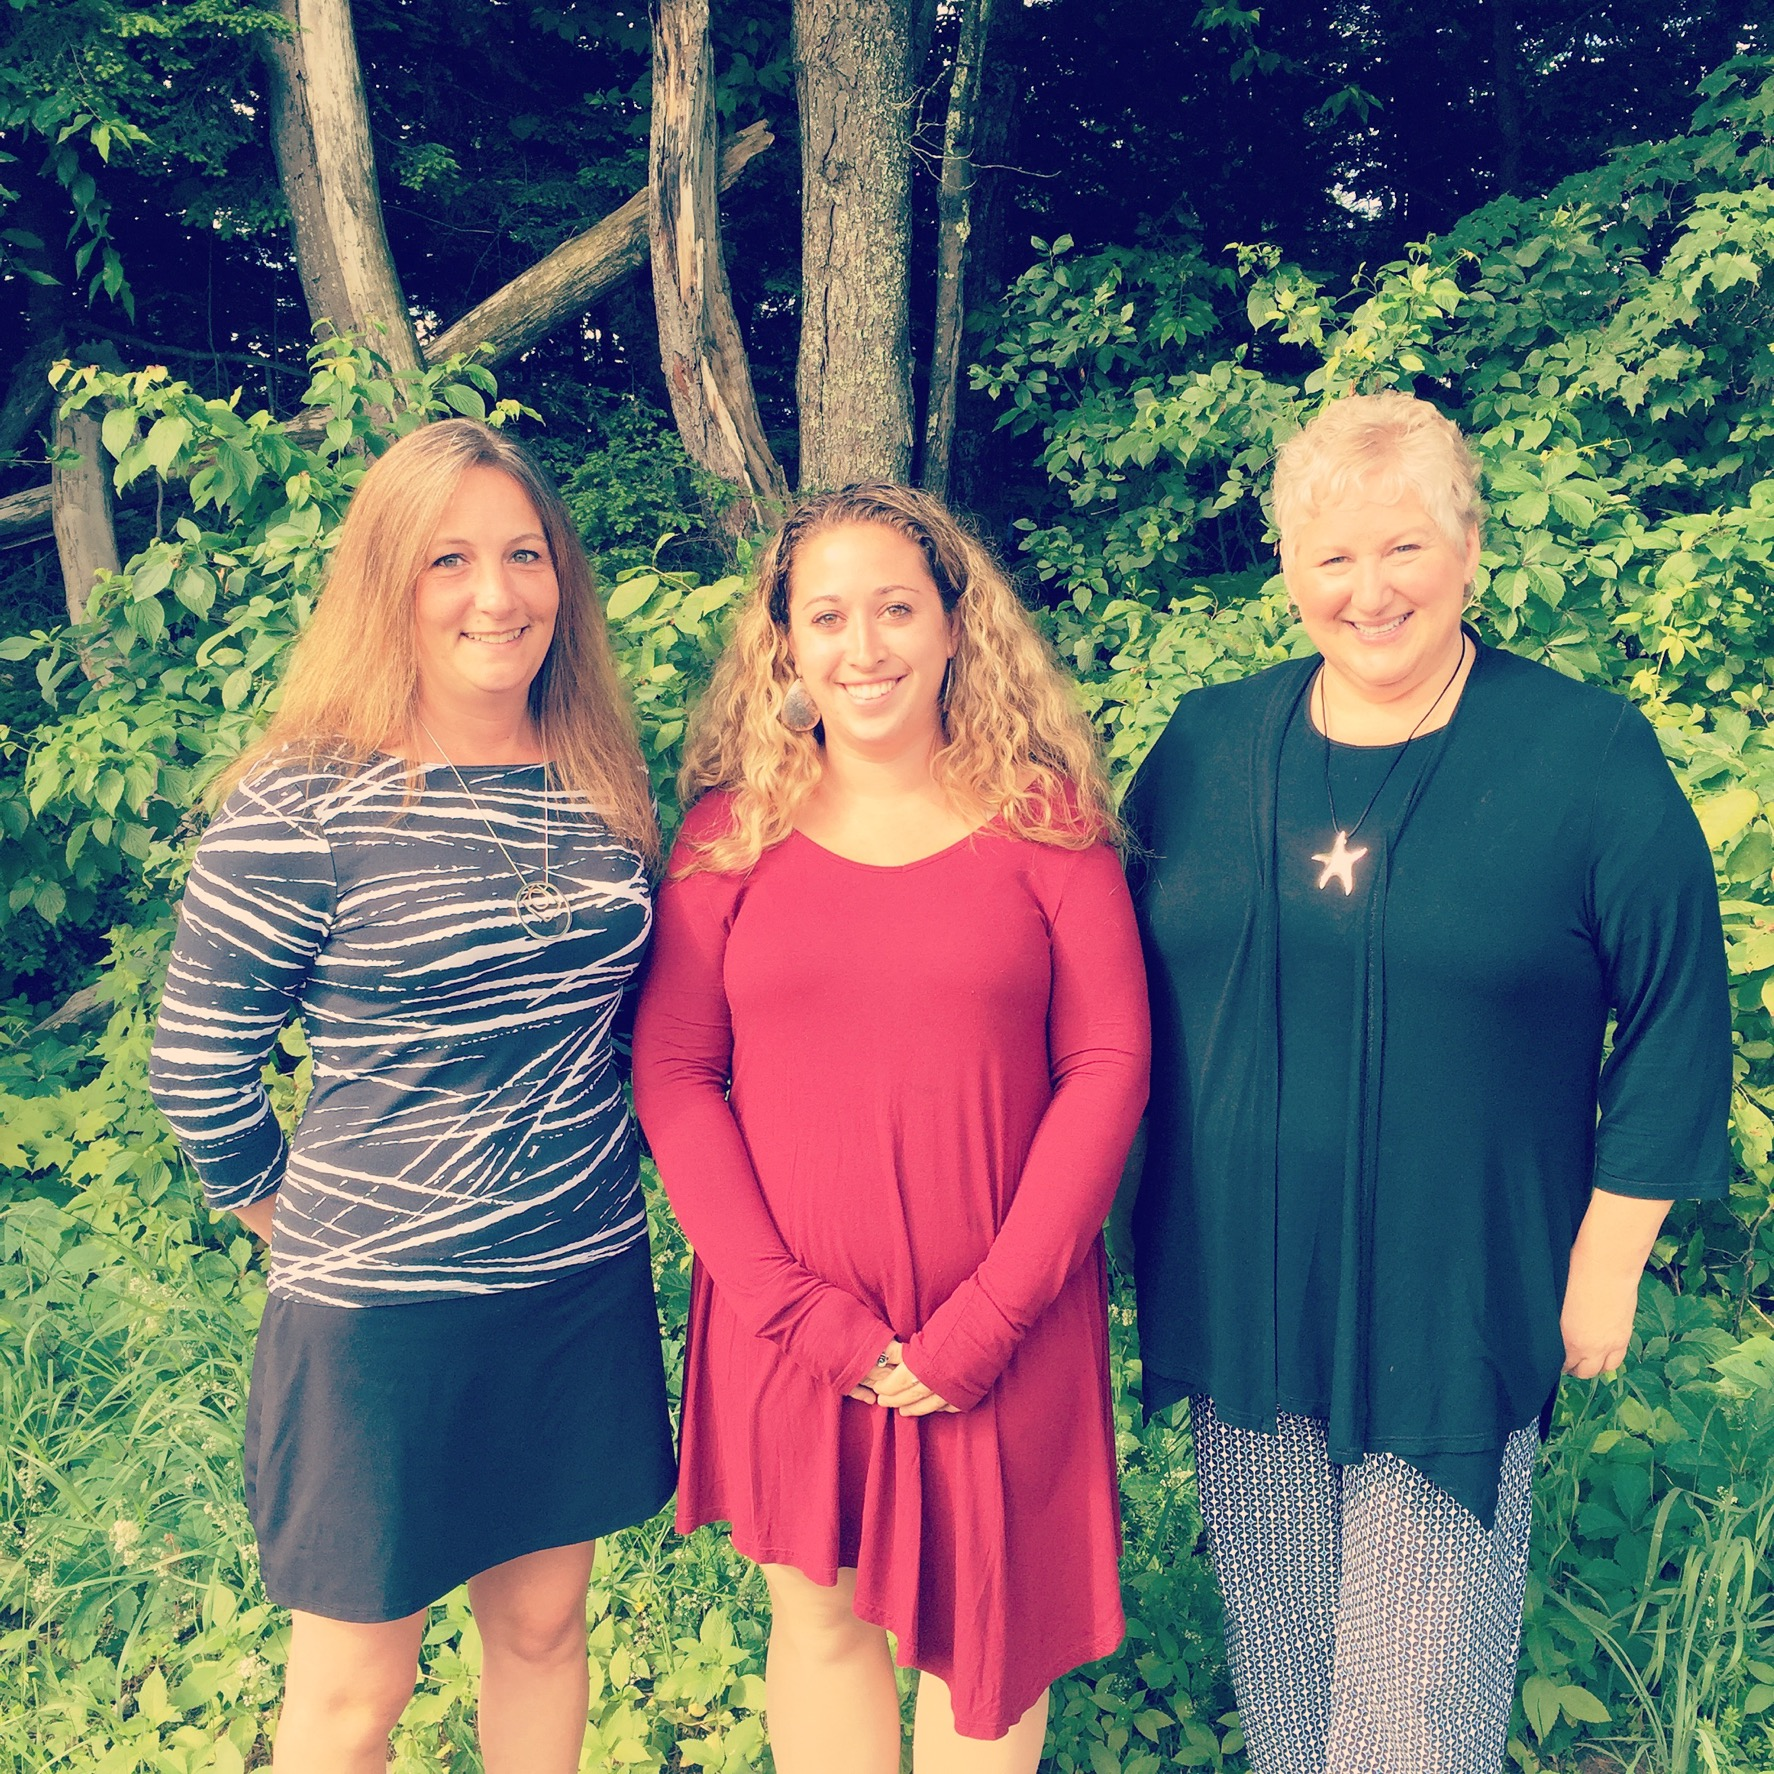 In late June we were proud to announce our new Admin Team! Michelle French as our new Admin Director and Chelsea Miller and Andrea Mayo as our new Admin Coordinators! (Left to Right)